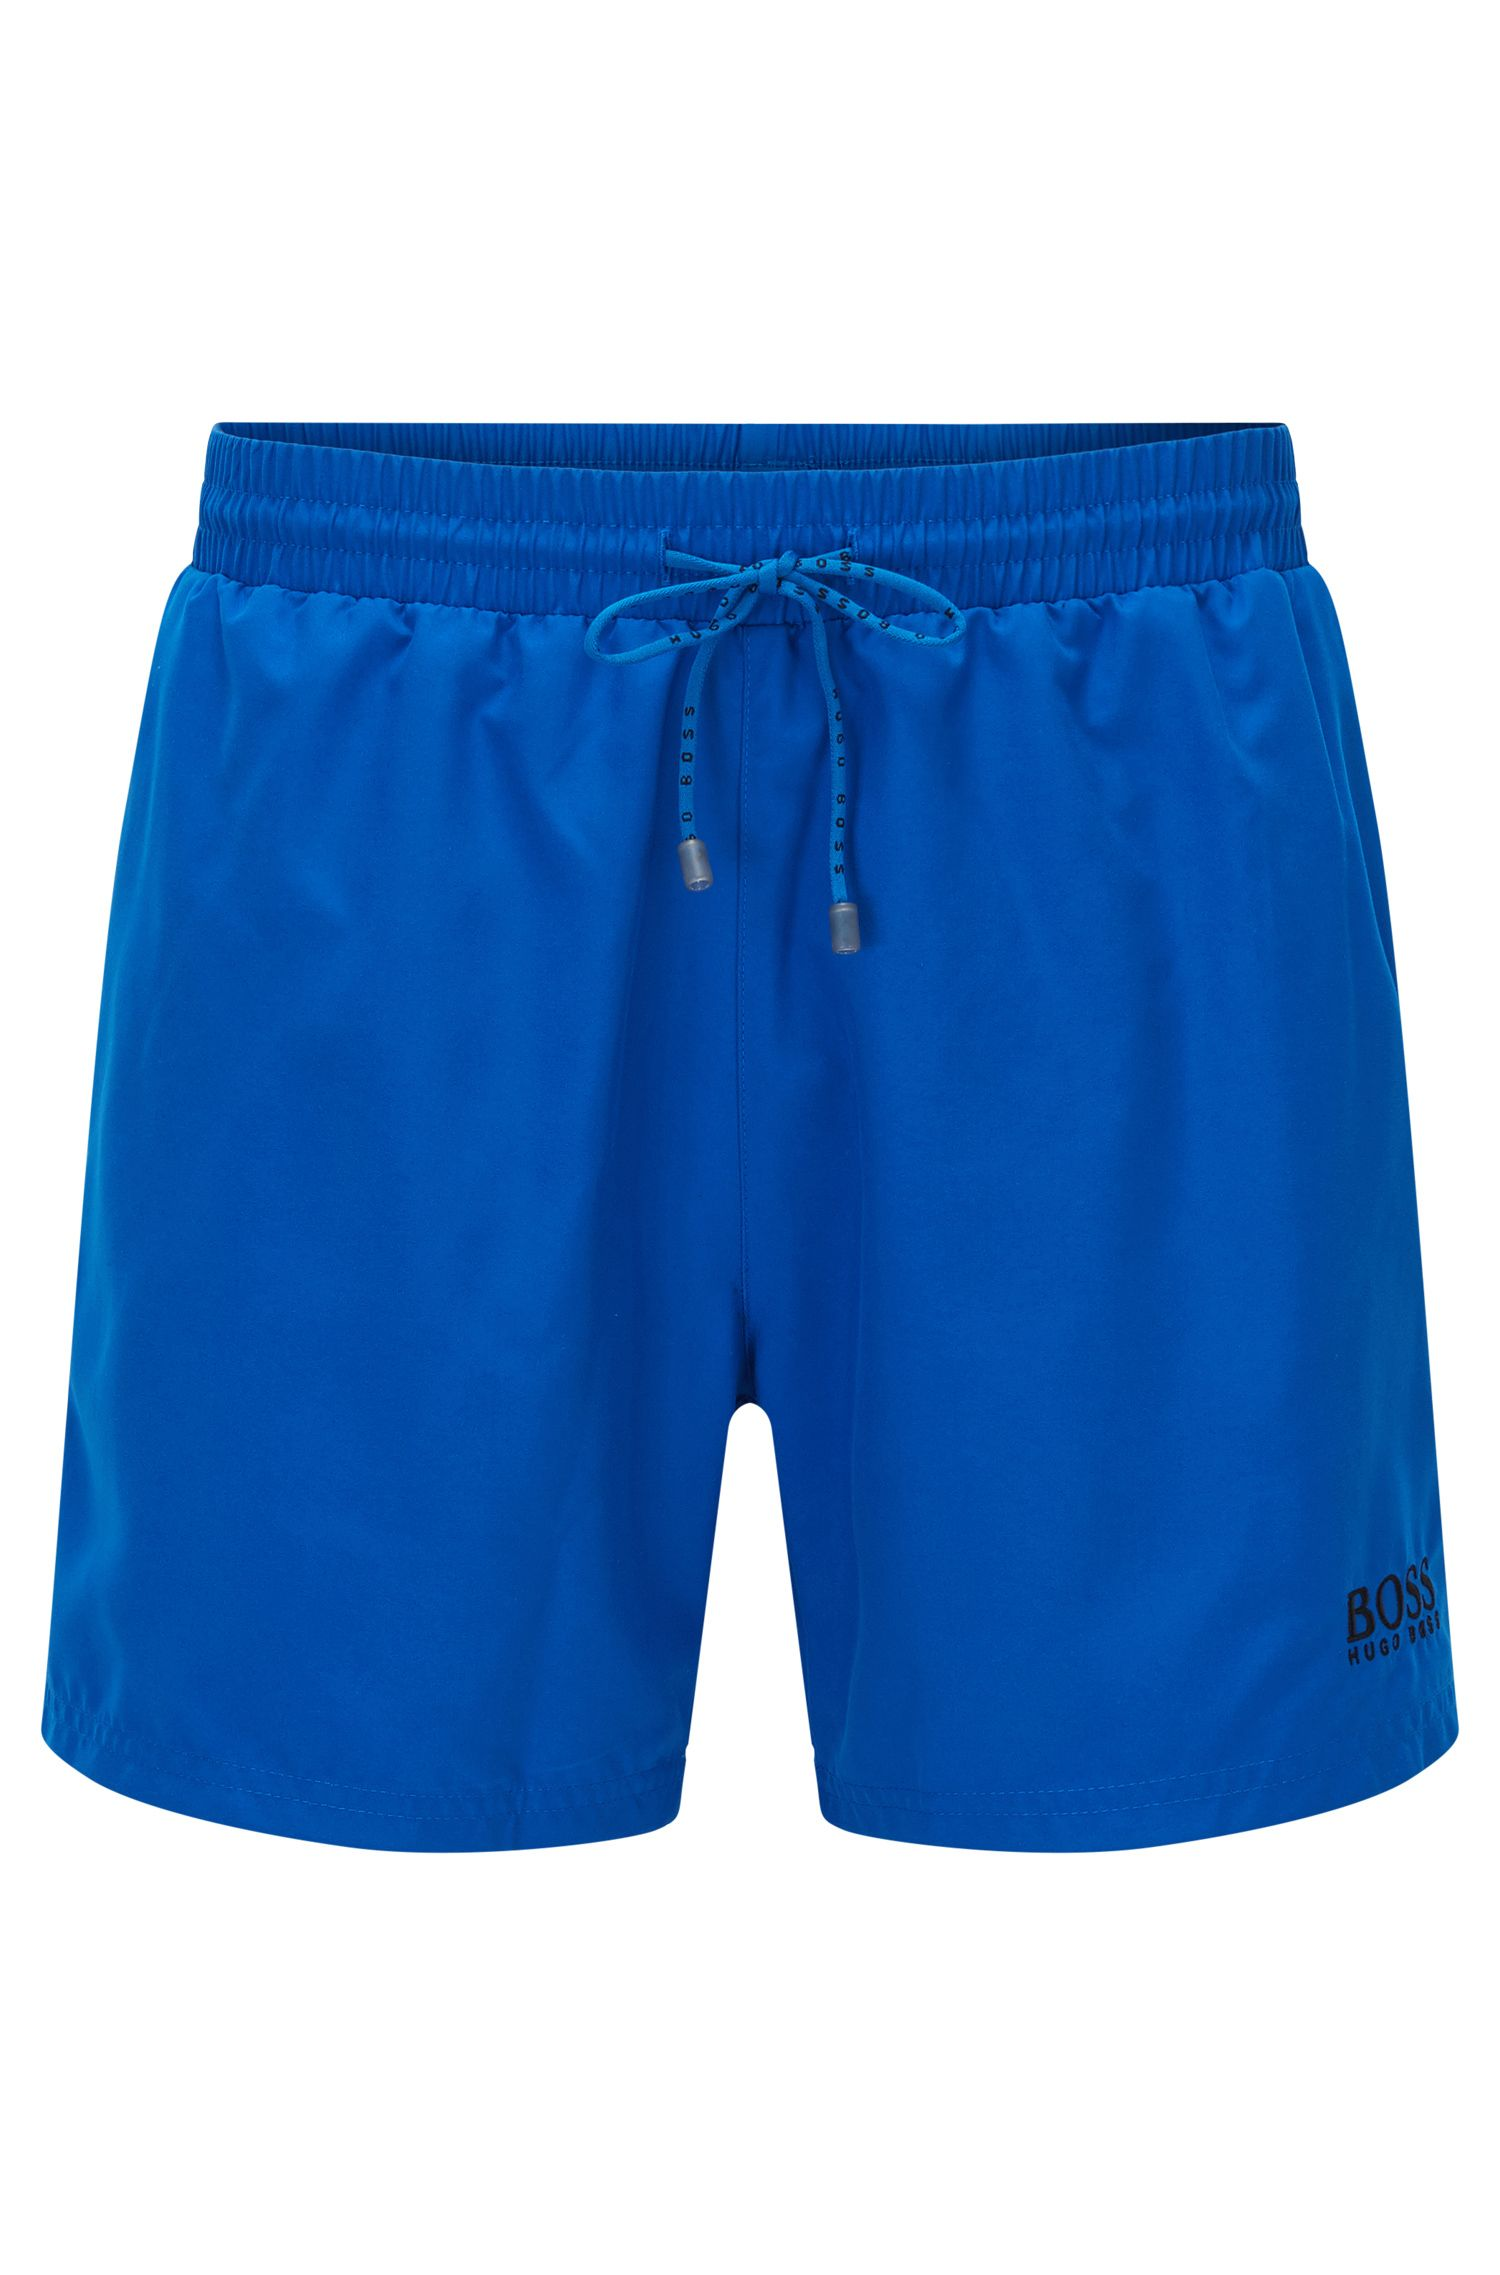 Short-length swim shorts in quick-drying fabric